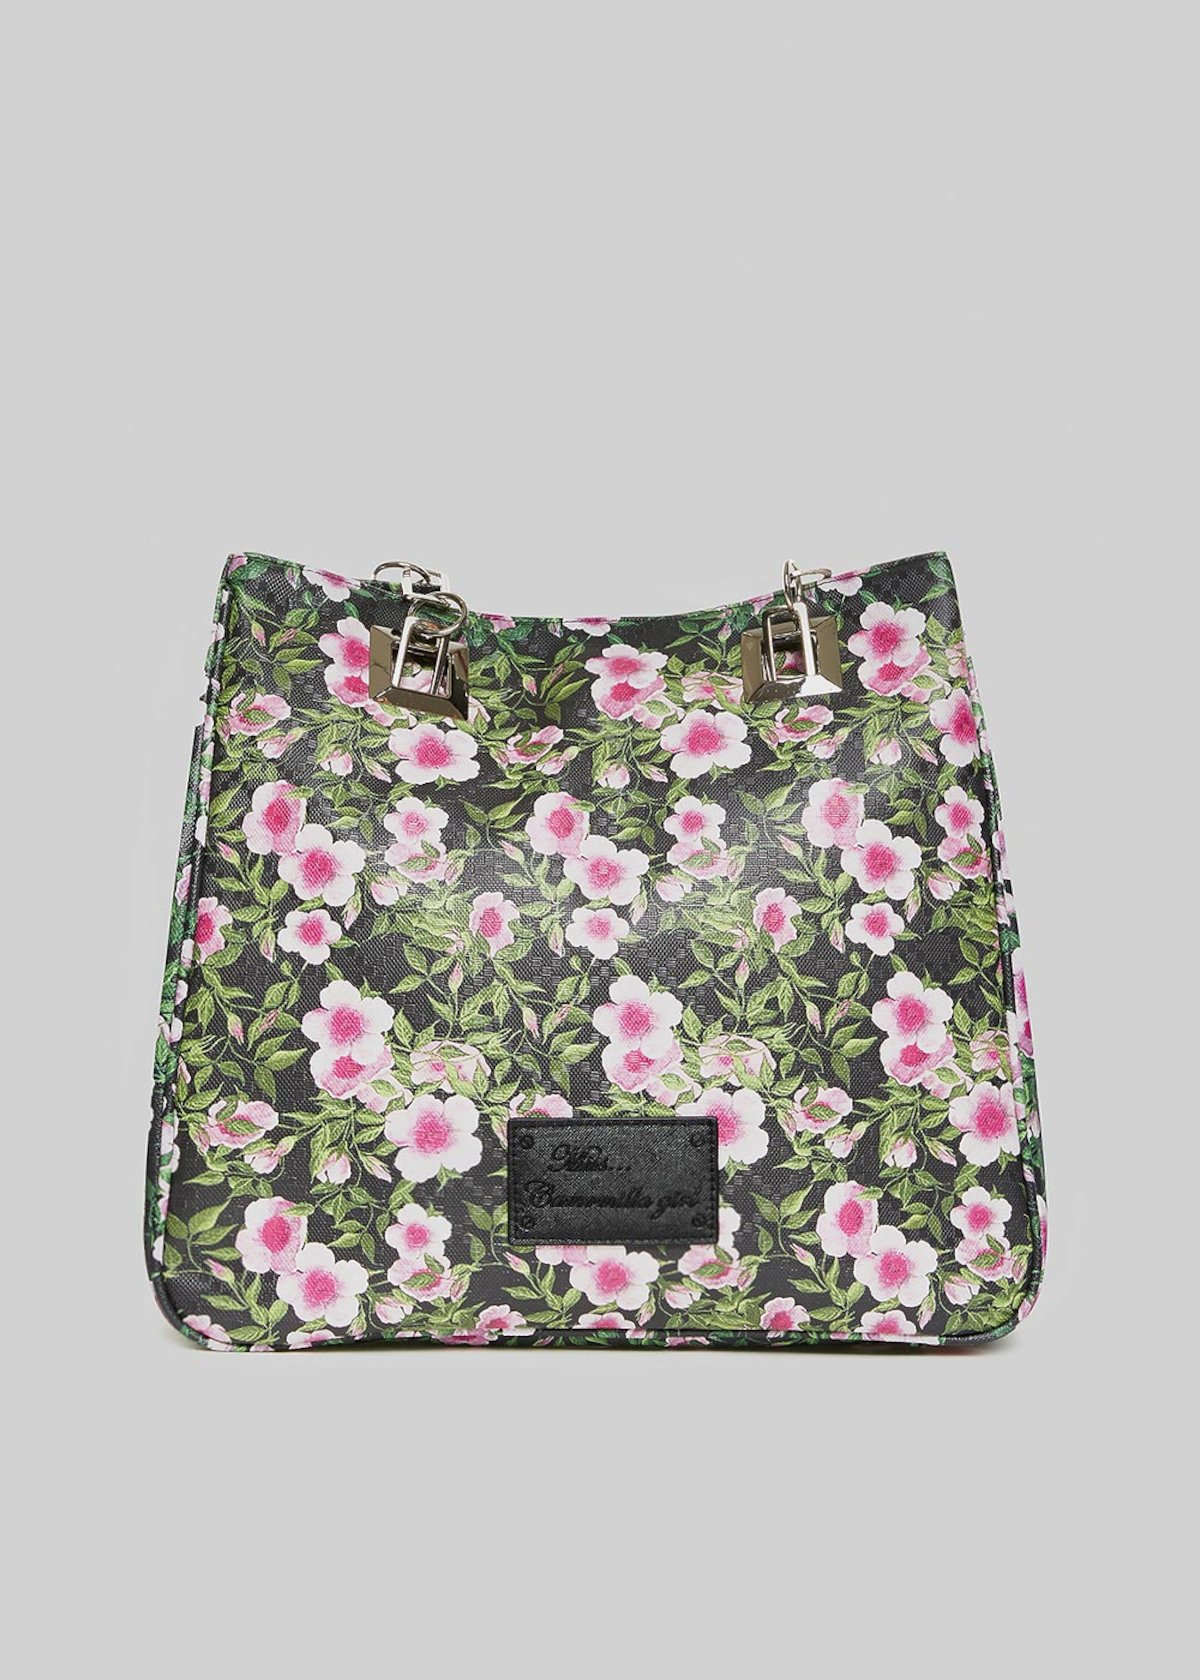 Mmissflo4 shopping bag in faux leather flowers print - Black Fantasia